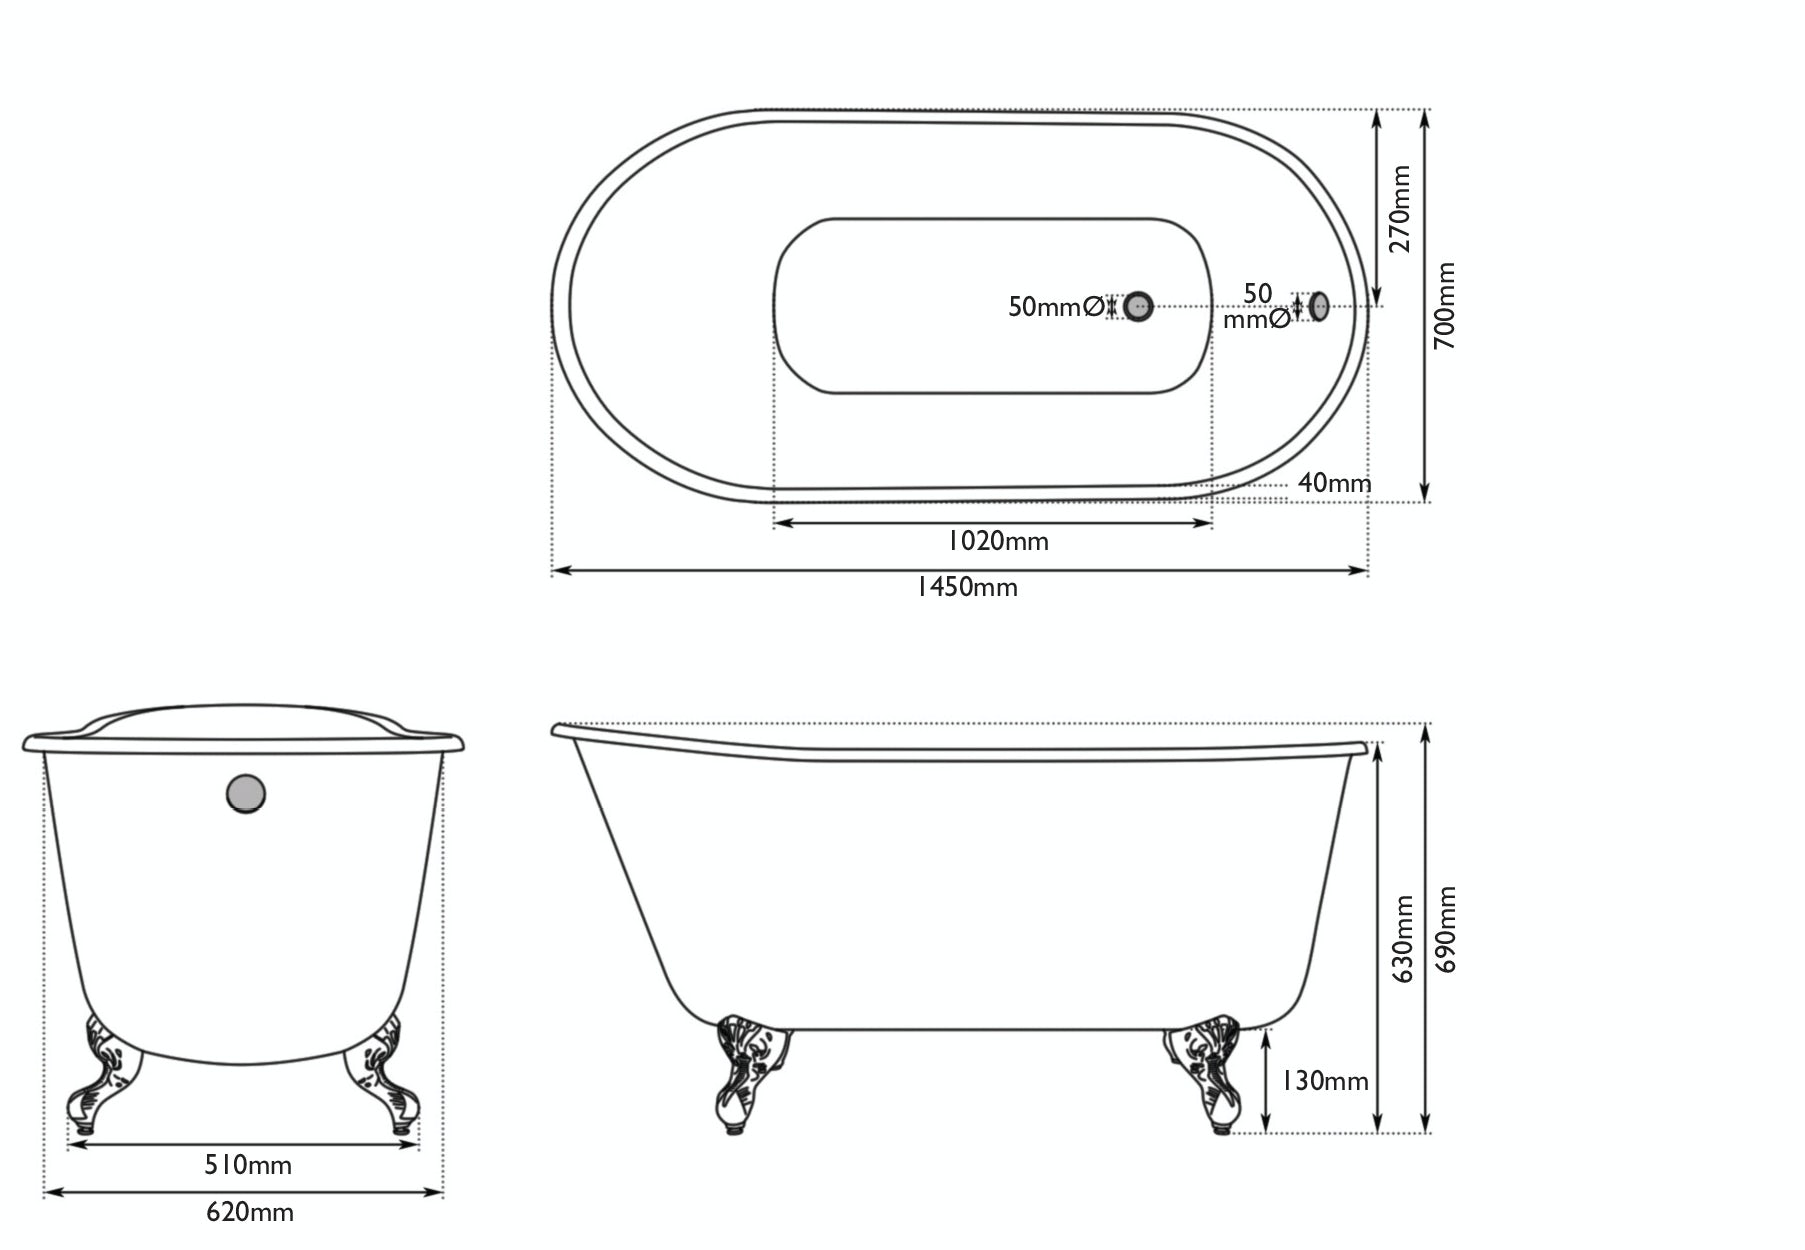 Dimensions for The Bath Co. Warwick smoke grey cast iron bath